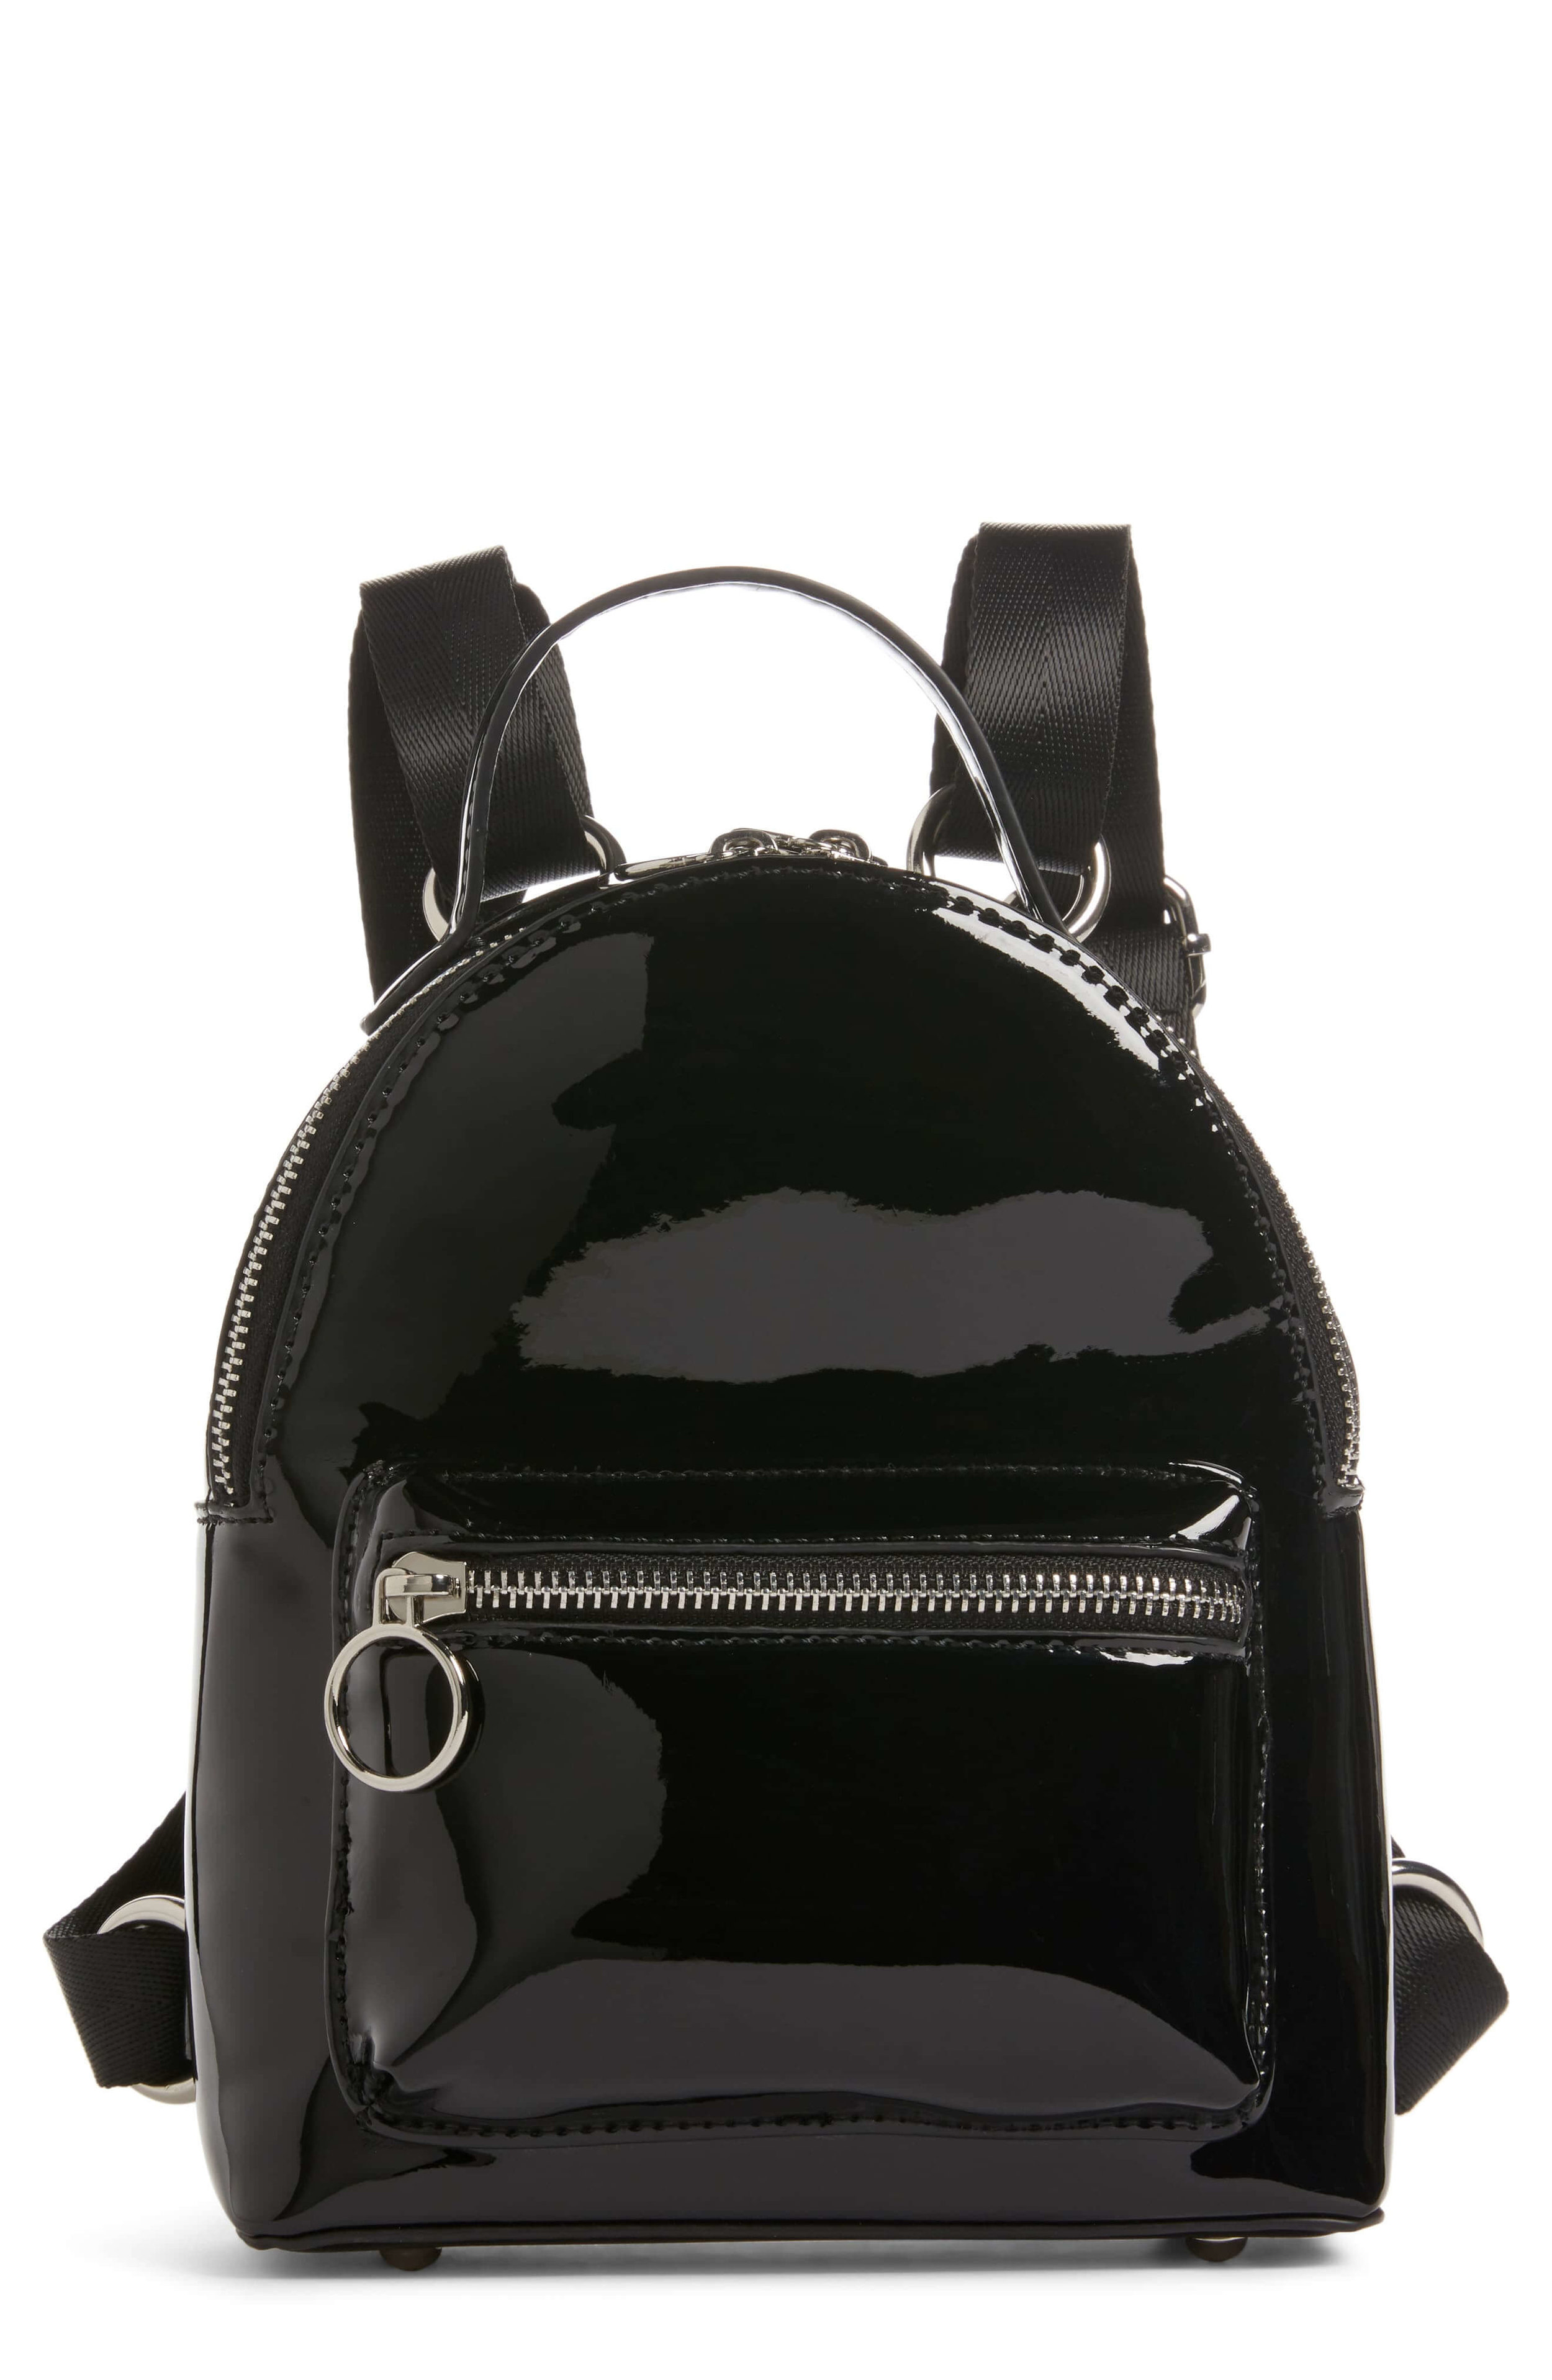 BP Patent Leather Mini Backpack